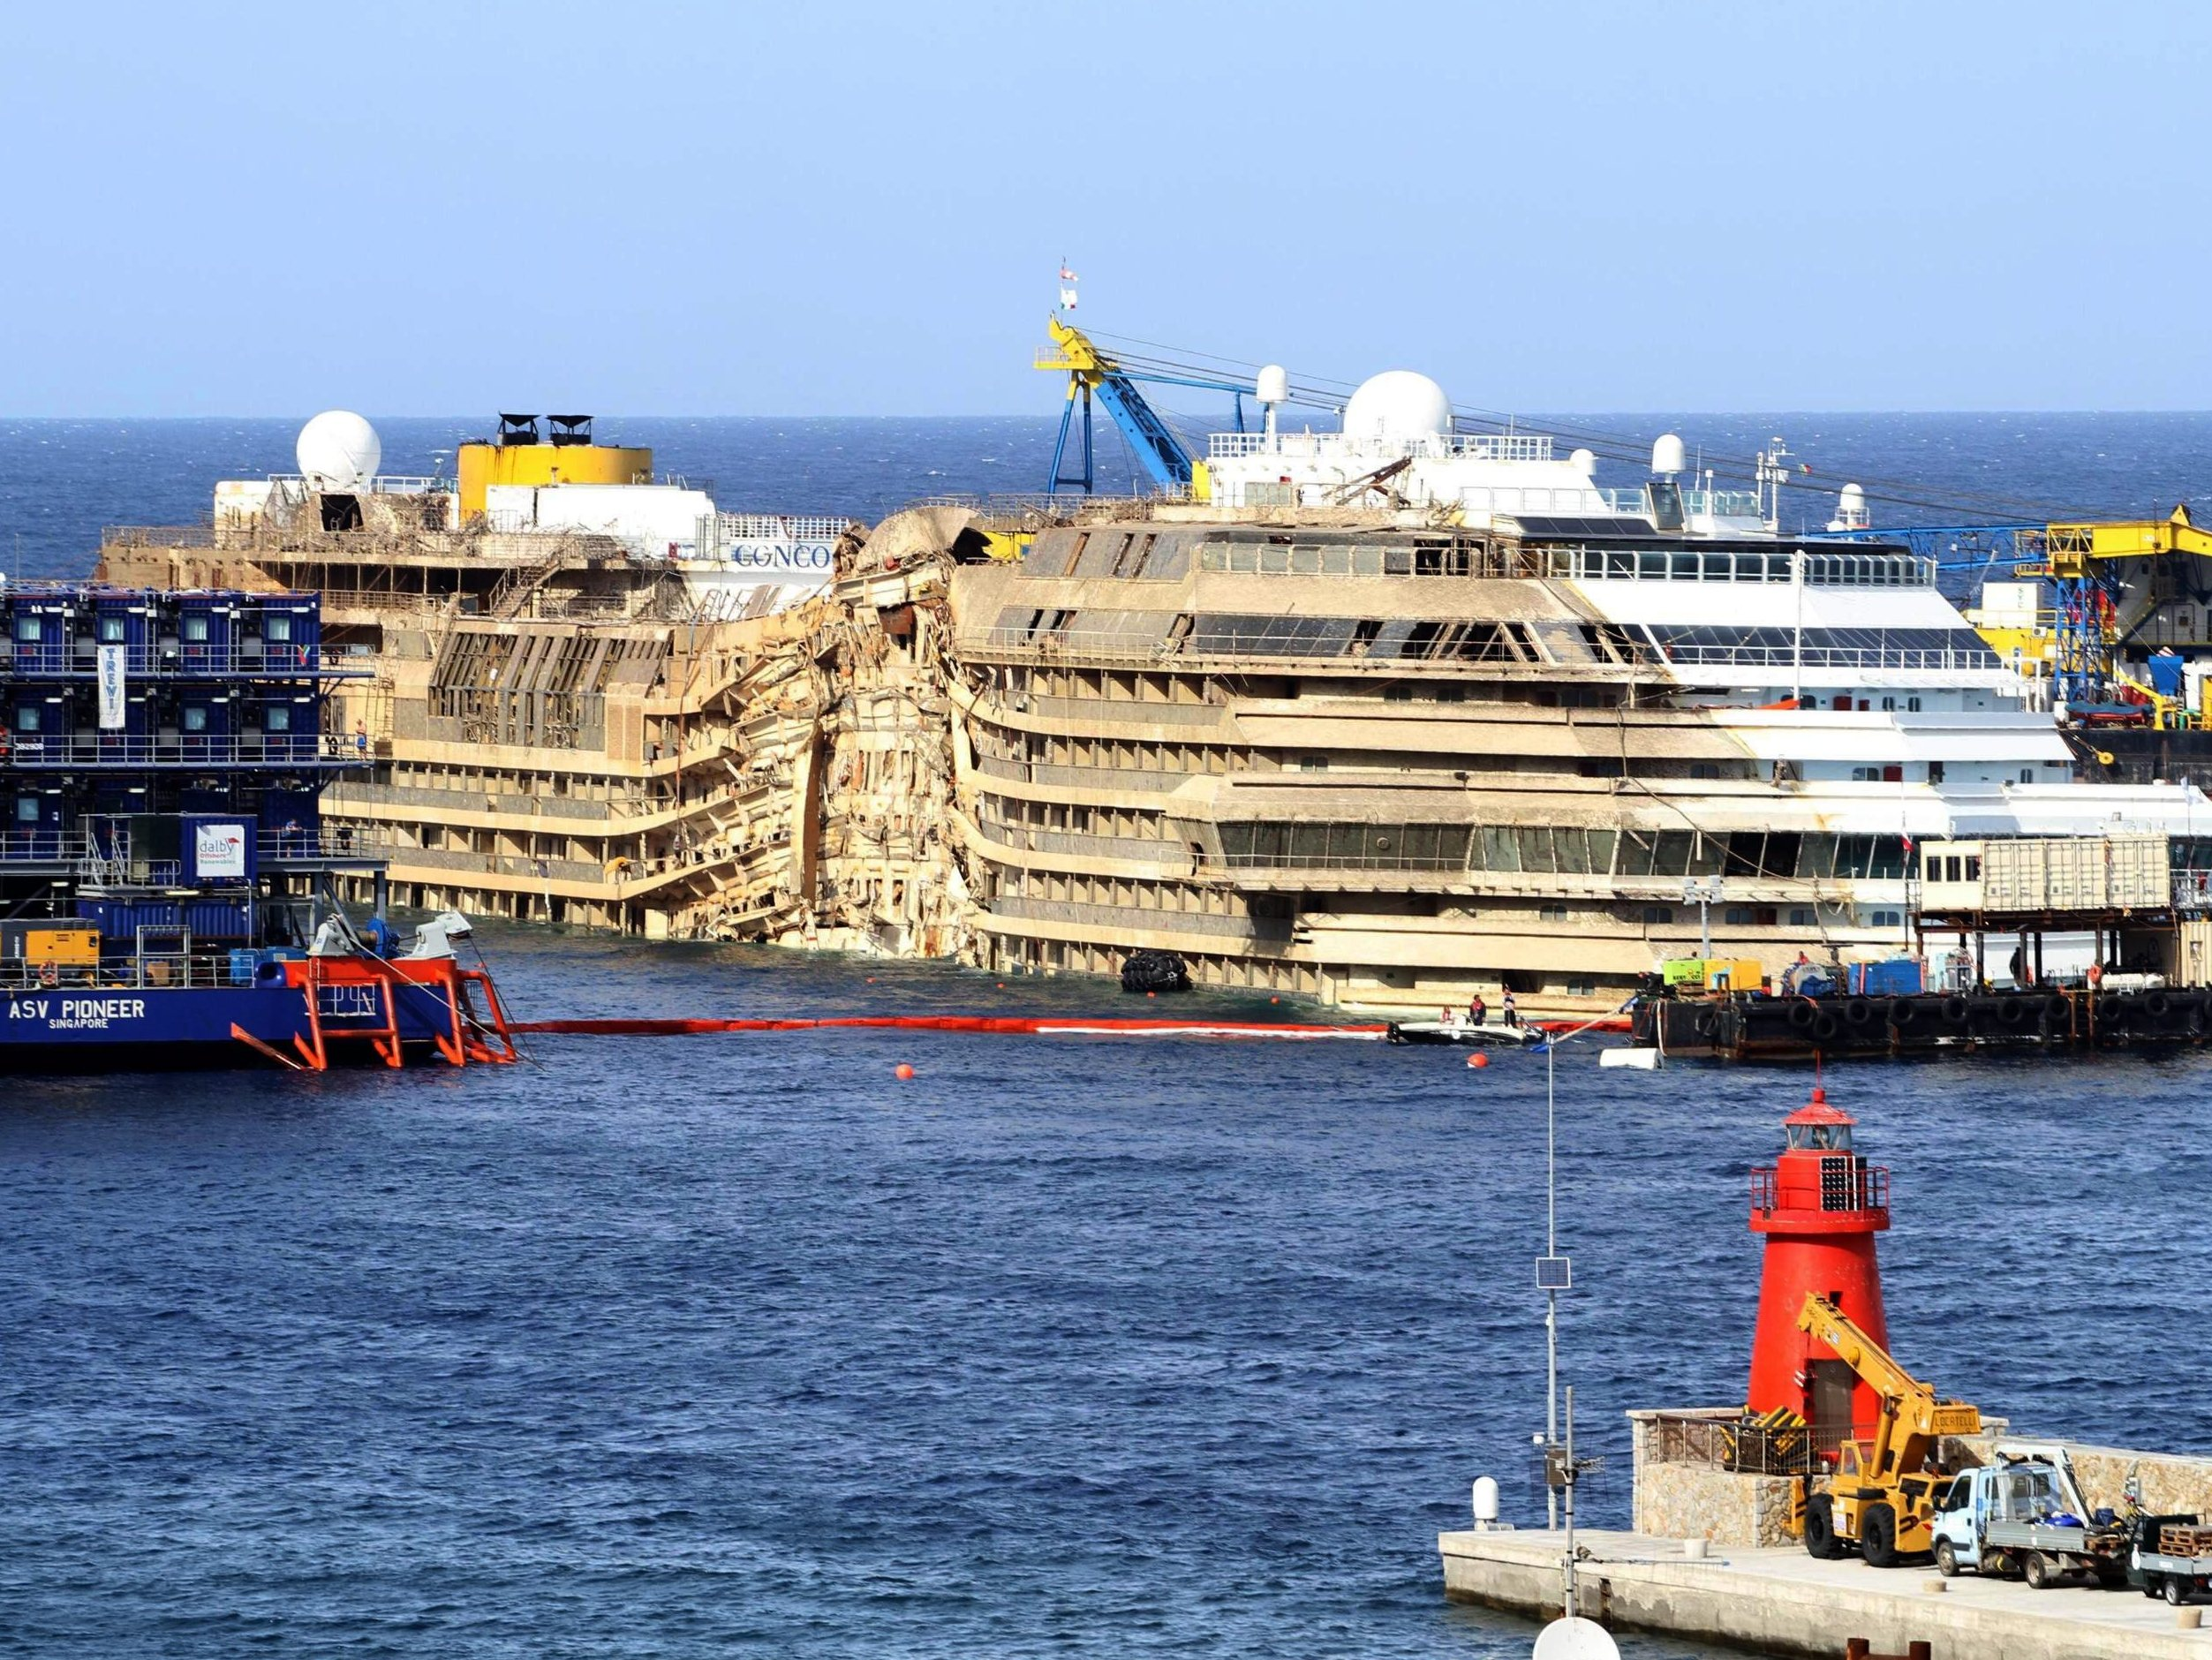 WATCH TimeLapse Video Of The Costa Concordia Being Righted WVXU - Where is a cruise ship now